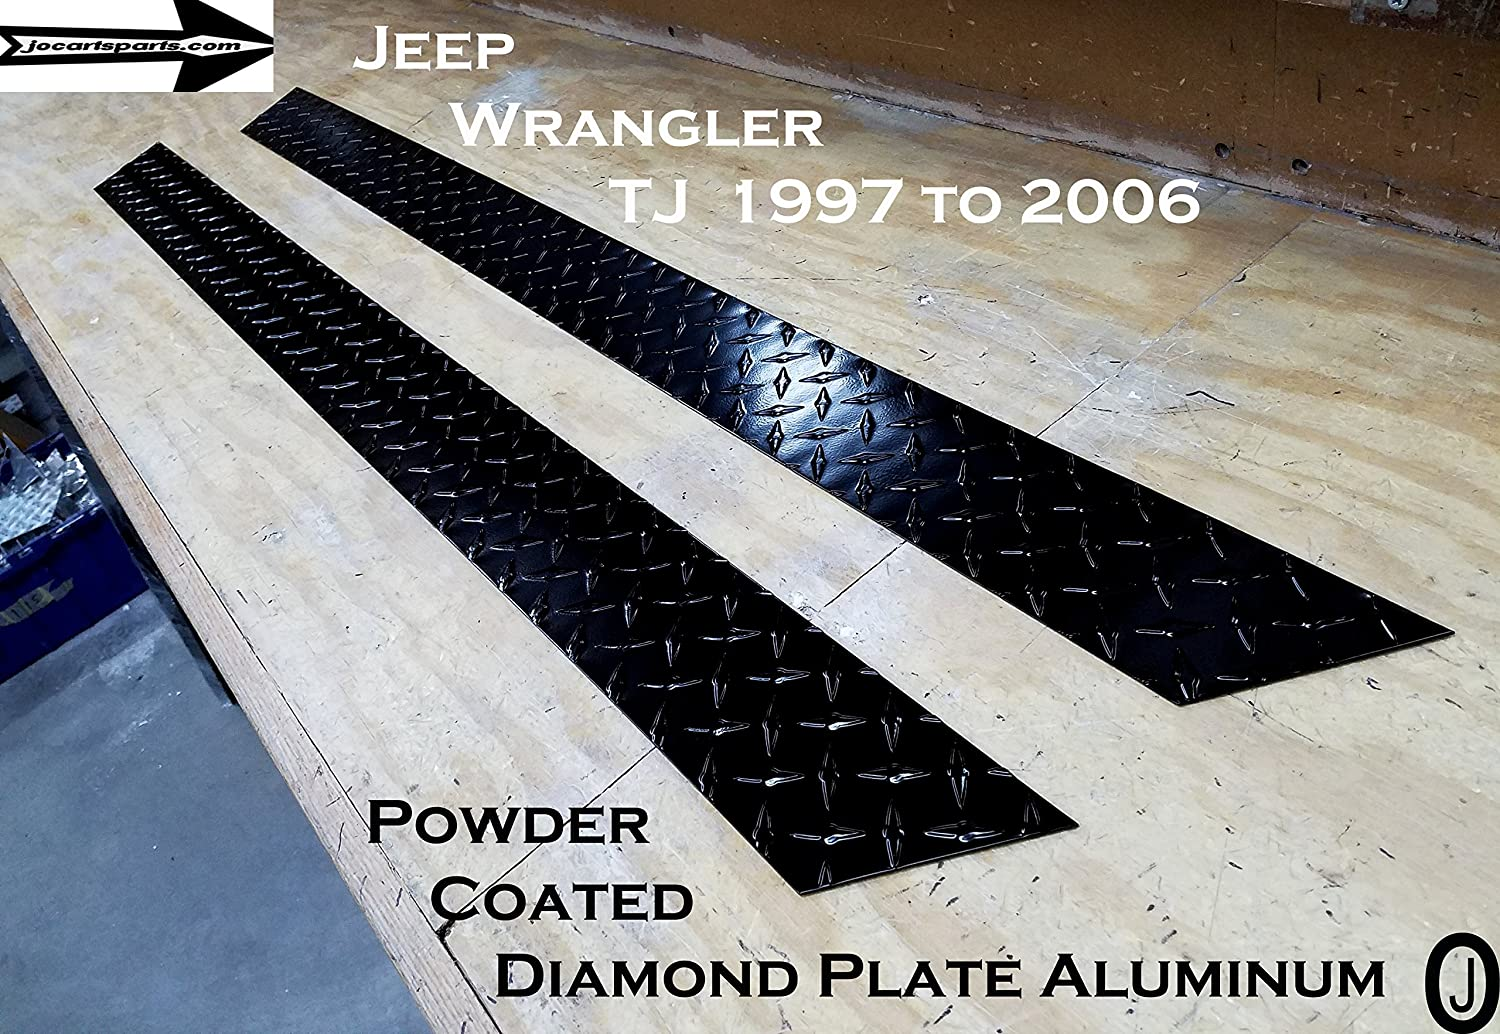 J /& O Carts Parts Jeep Wrangler TJ 3.5 Tall Rocker Panels Black Powder Coated Aluminum Diamond Plate